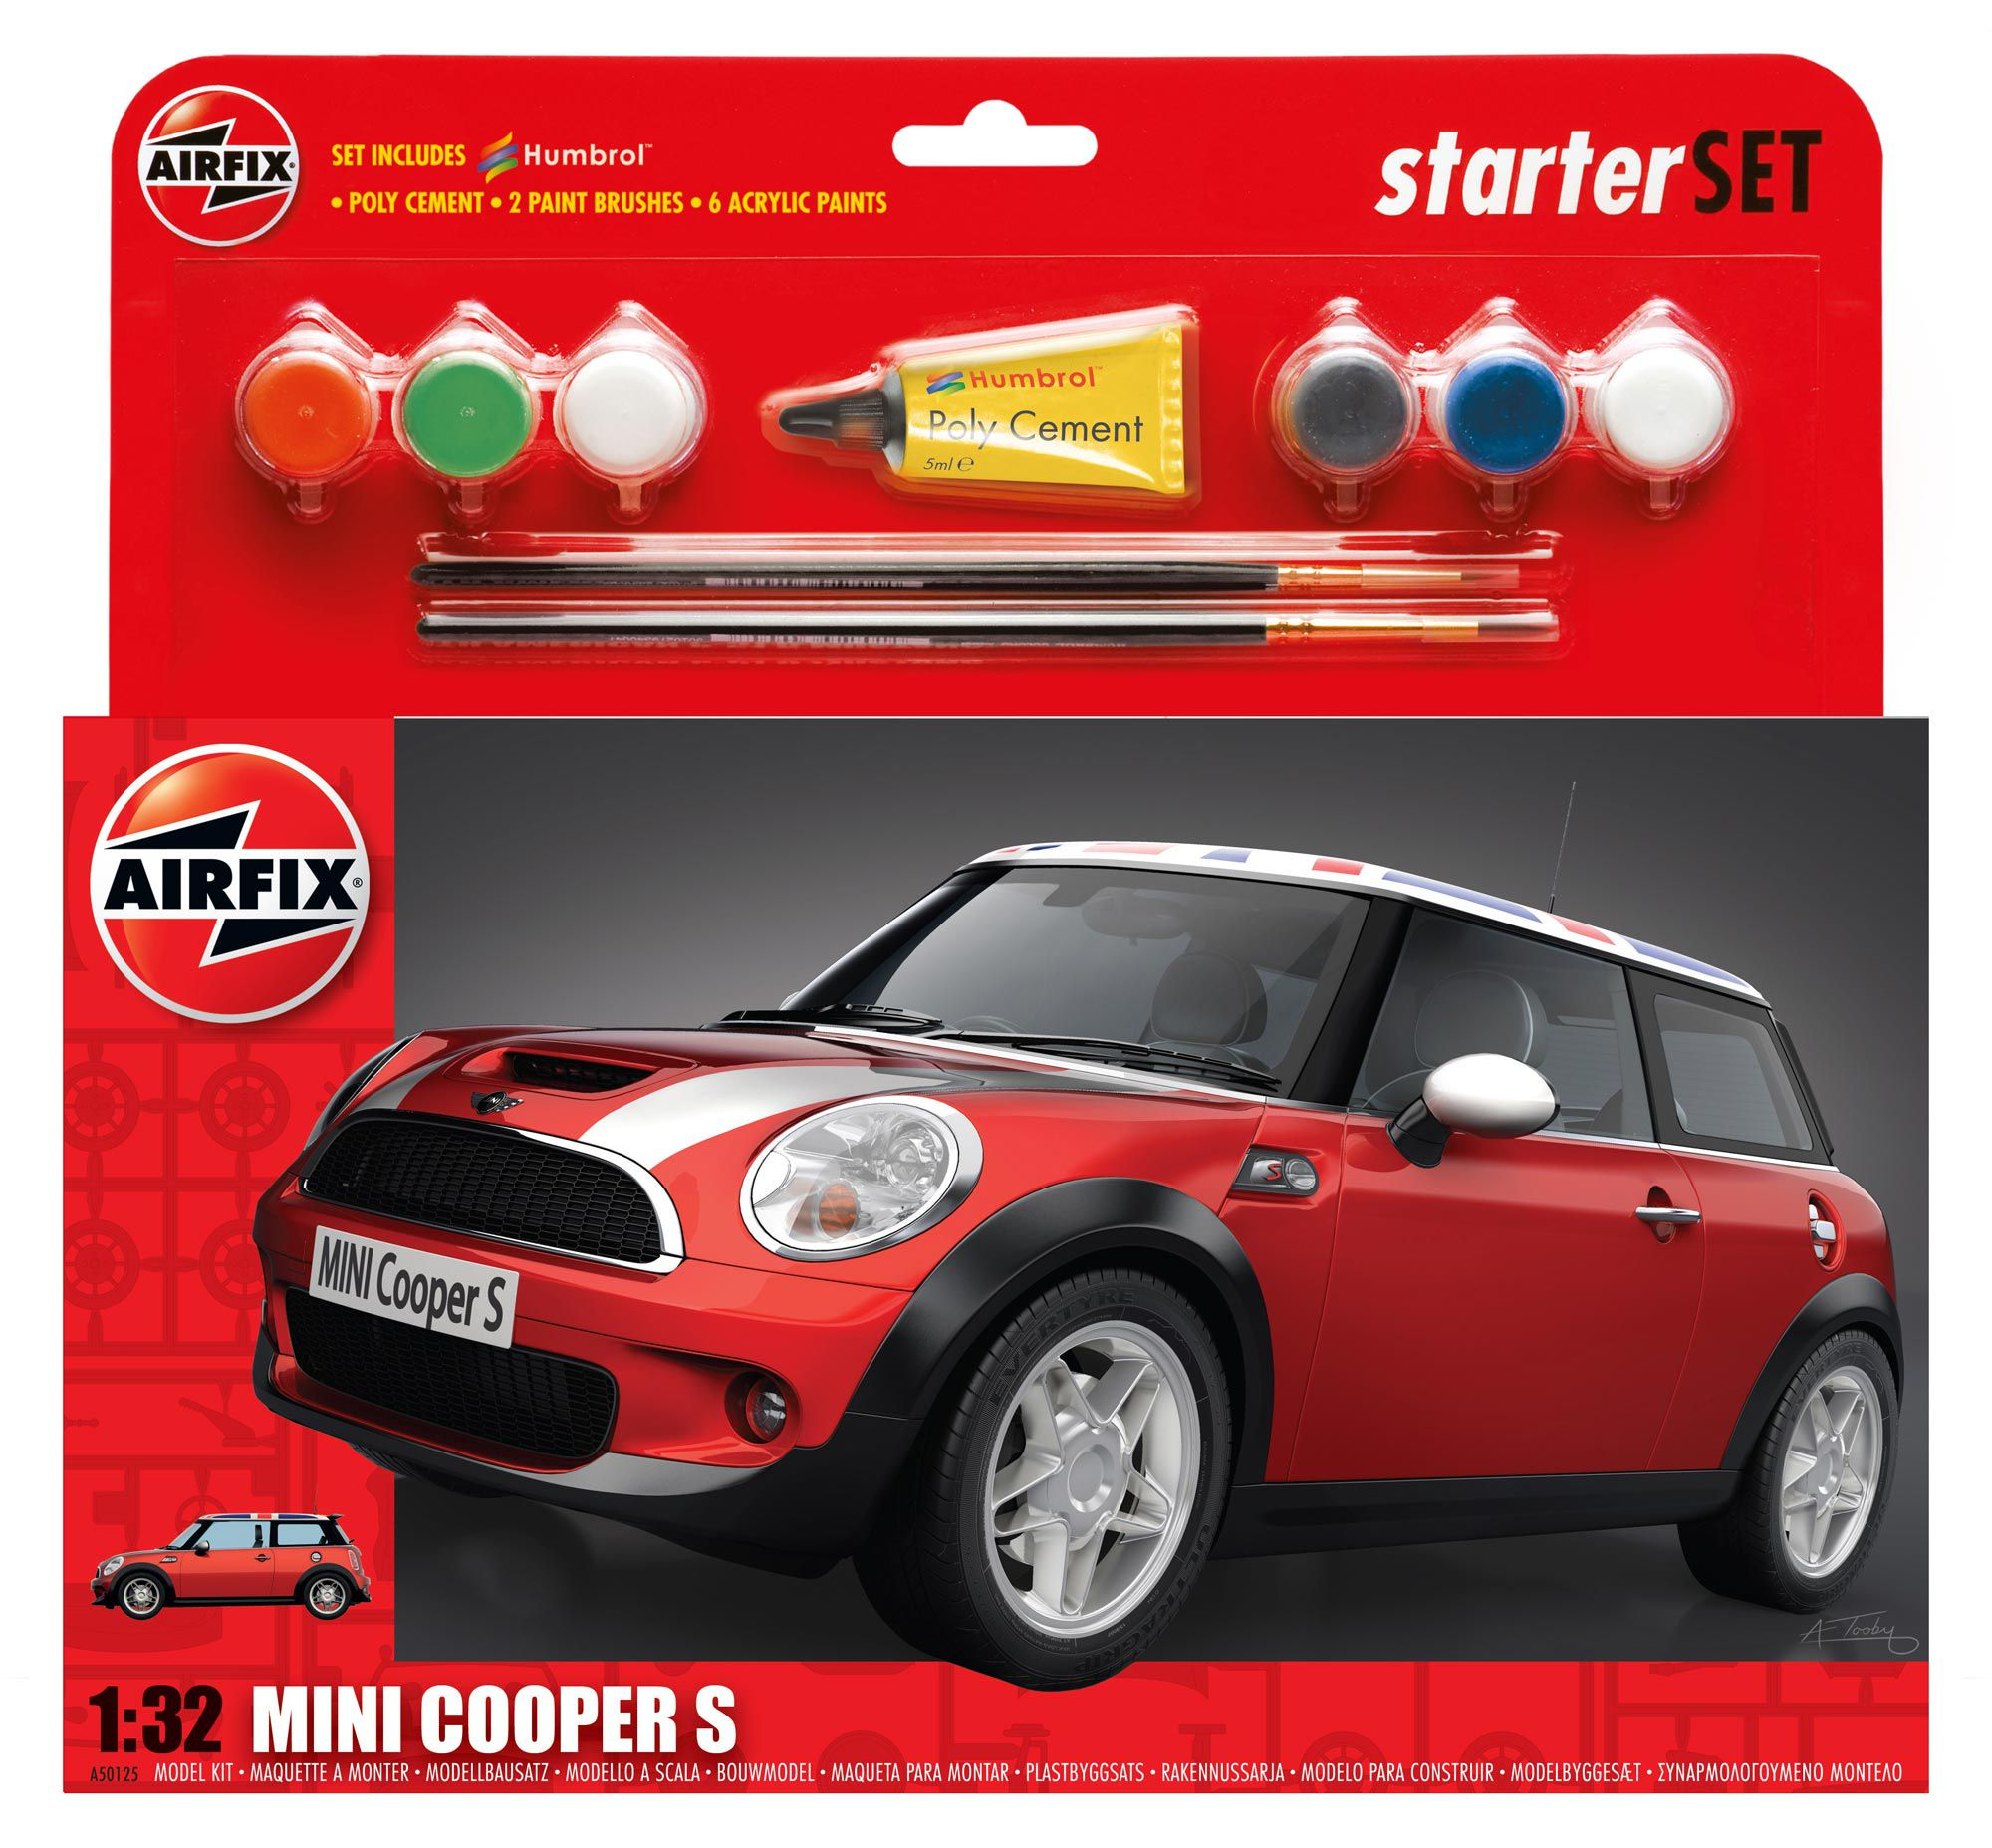 Picture Gallery for Airfix A50125 MINI Cooper S Starter Set 1:32